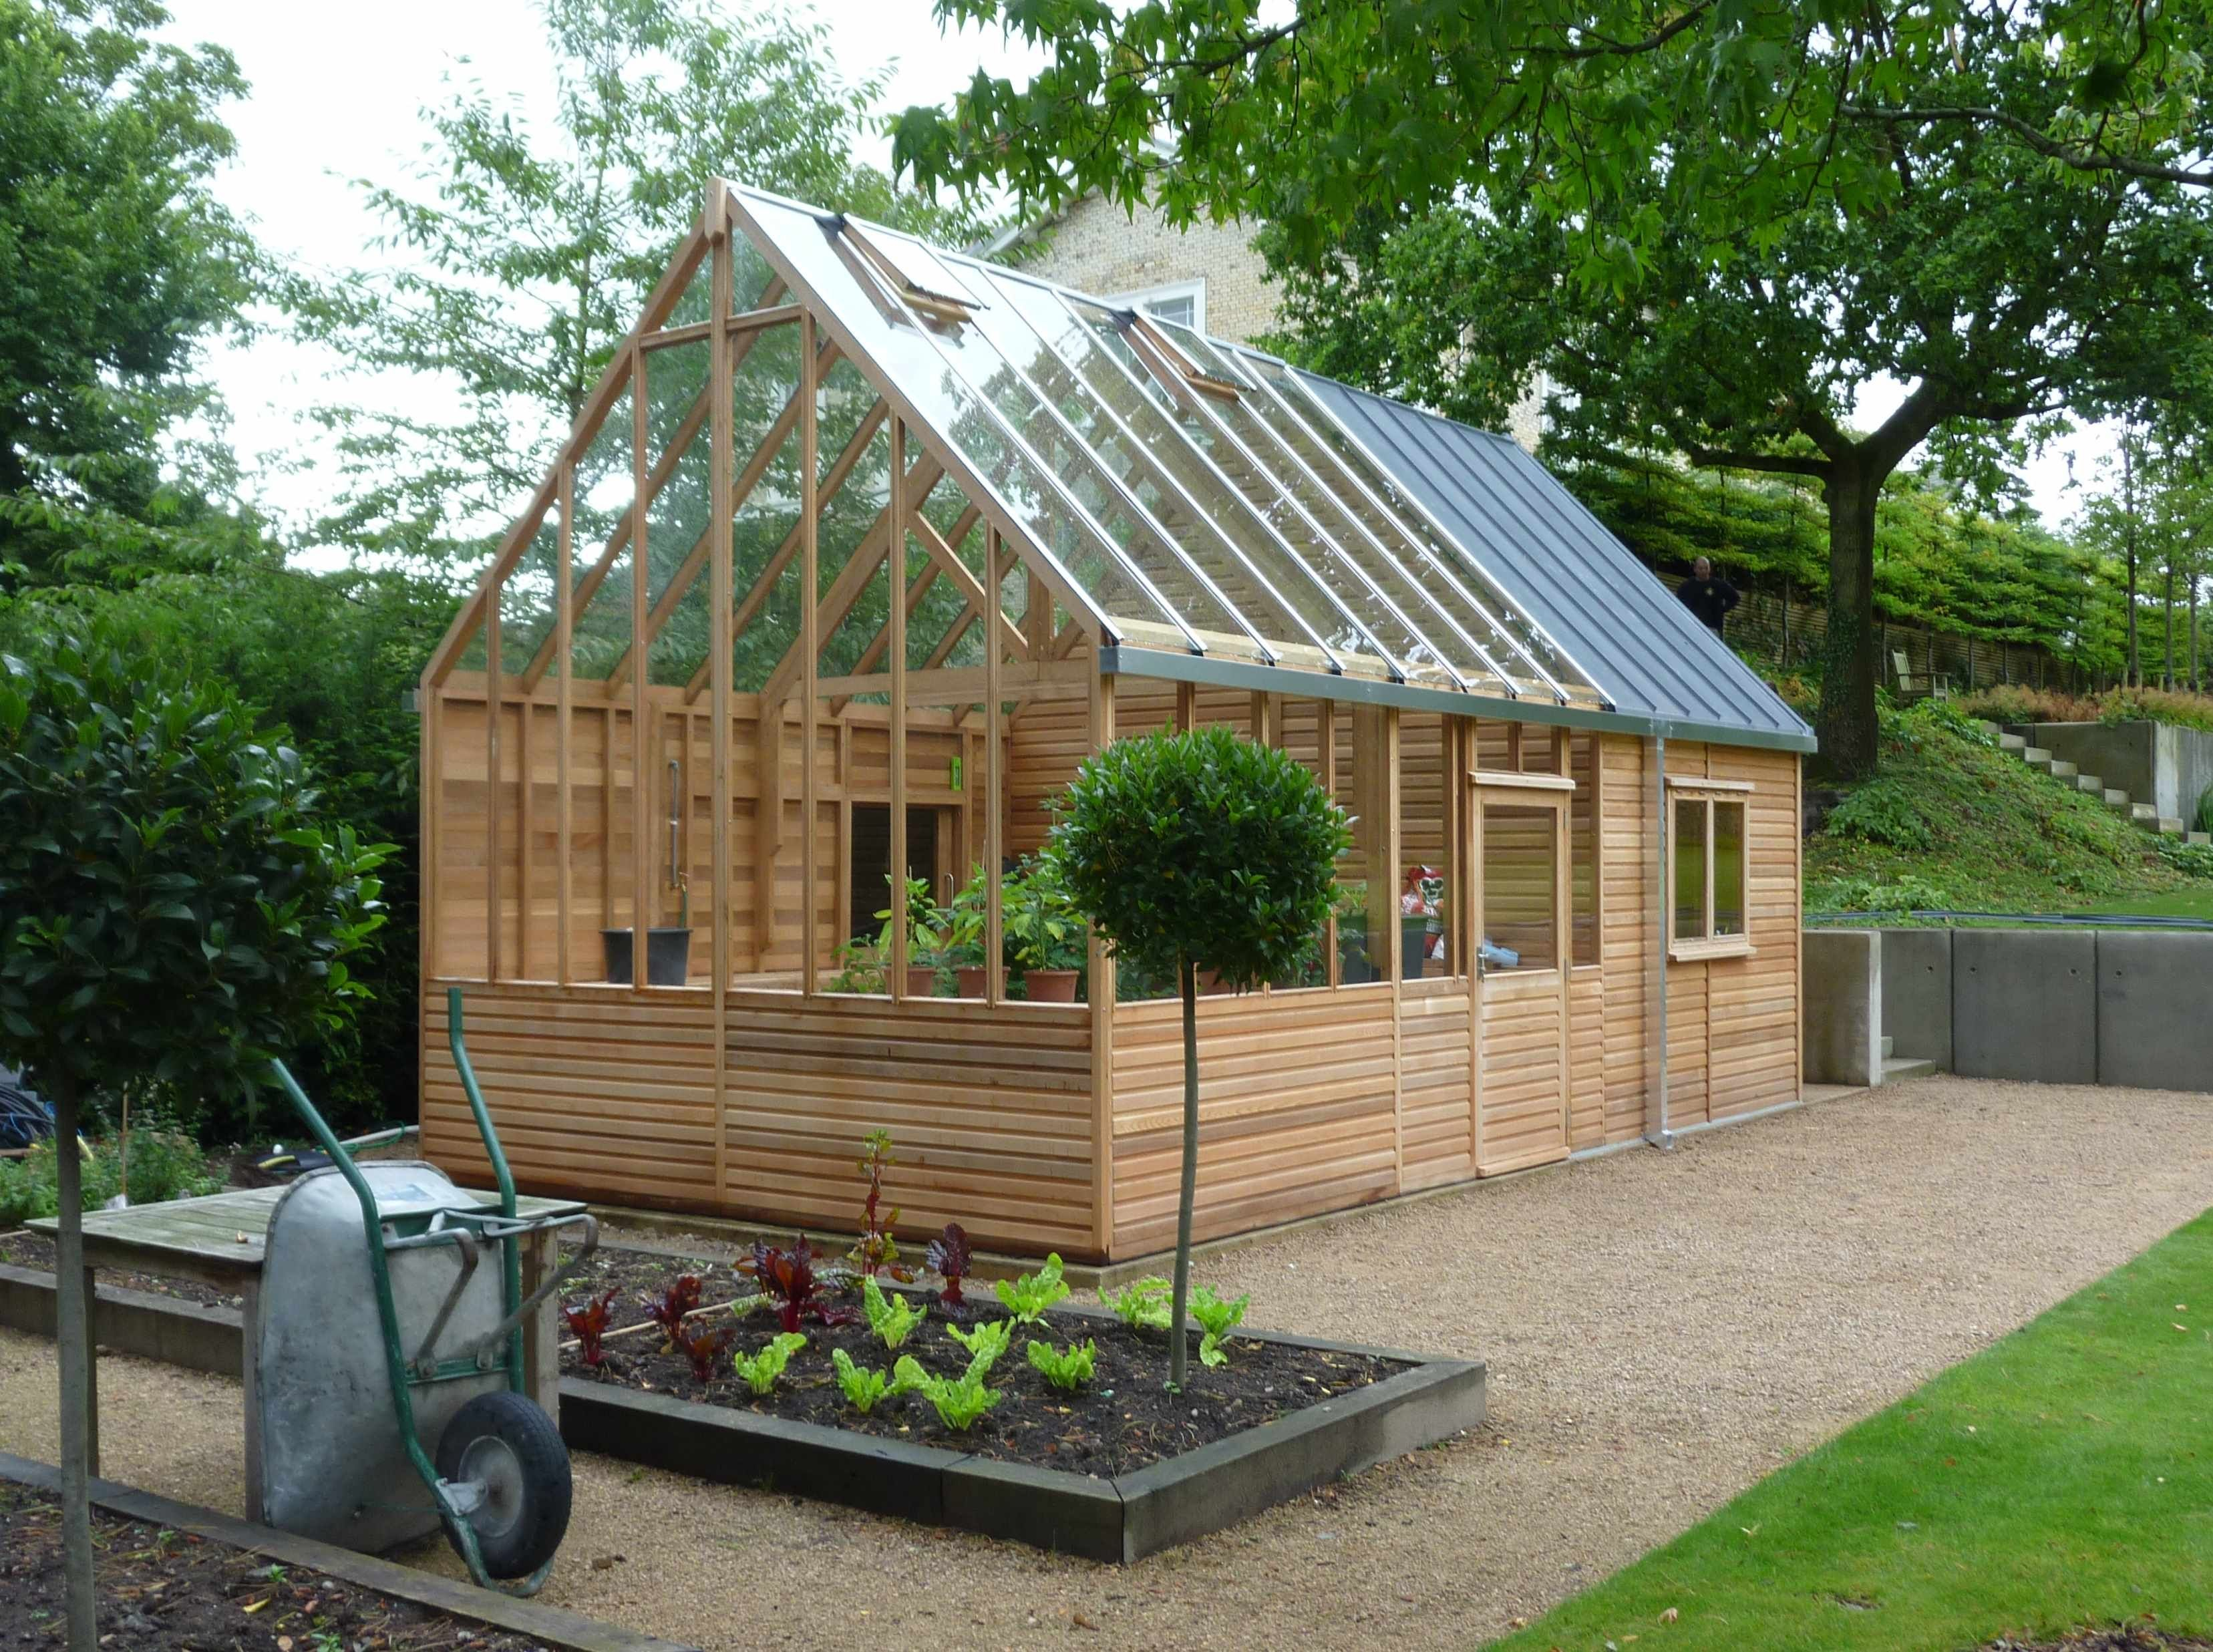 Excellent Small Backyard Greenhouses Pics Decoration Ideas inside 12 Some of the Coolest Concepts of How to Upgrade Backyard Greenhouse Ideas